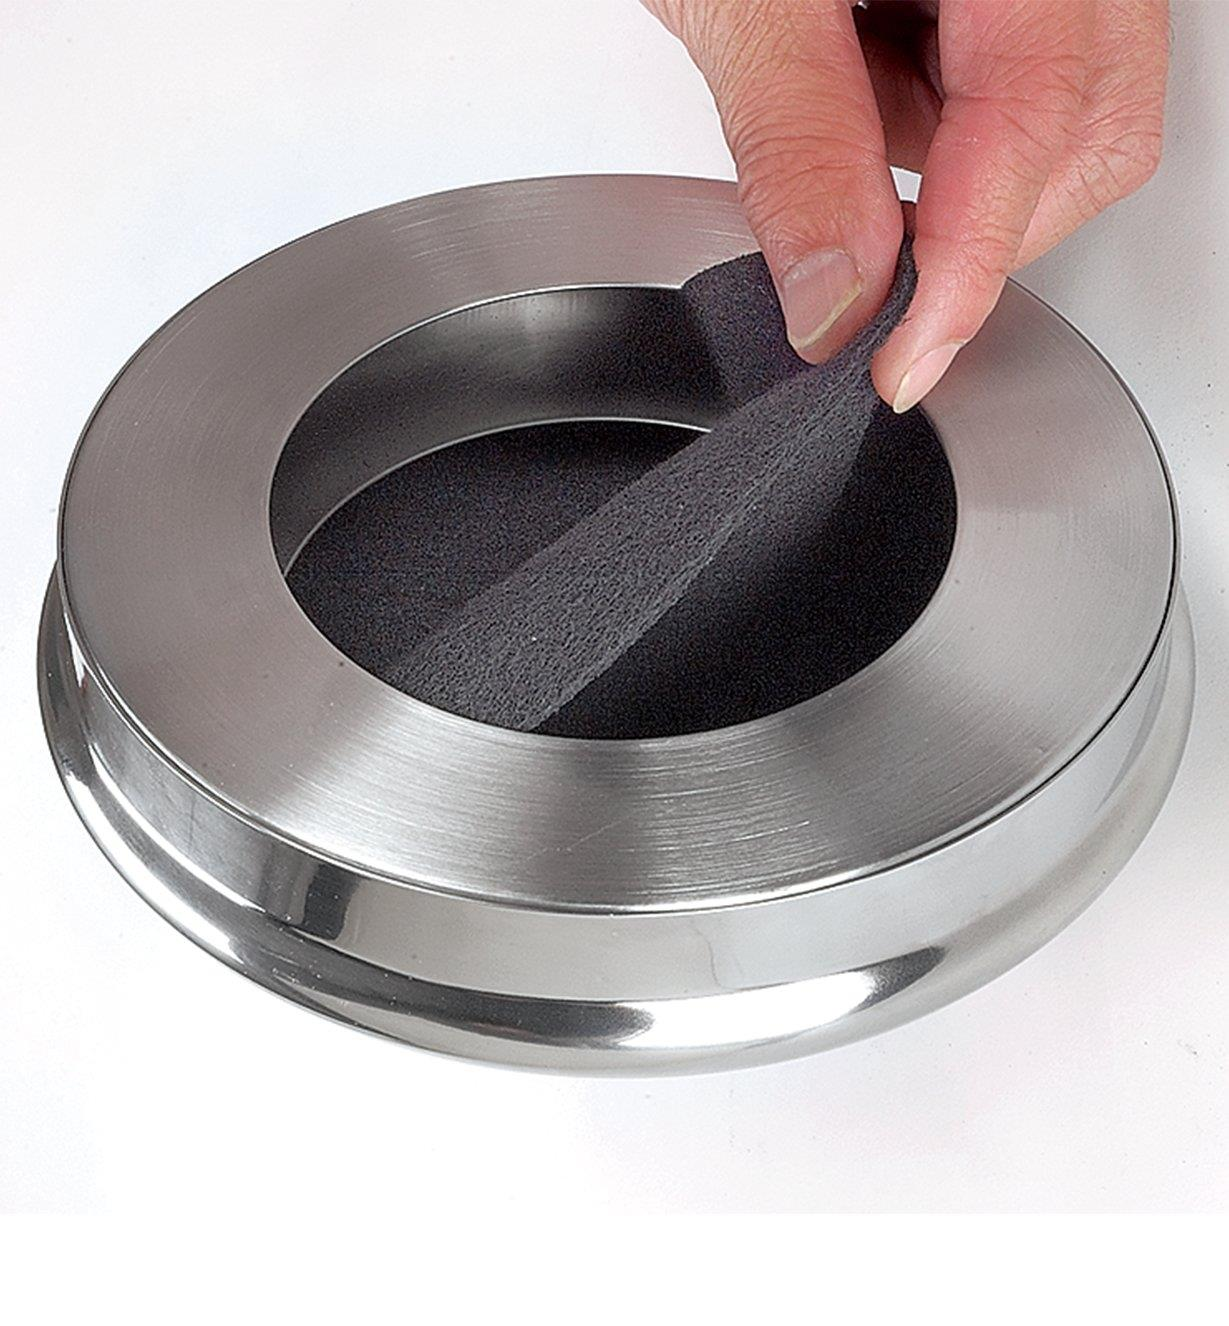 Countertop compost pail filters are placed in the lid to absorb odors